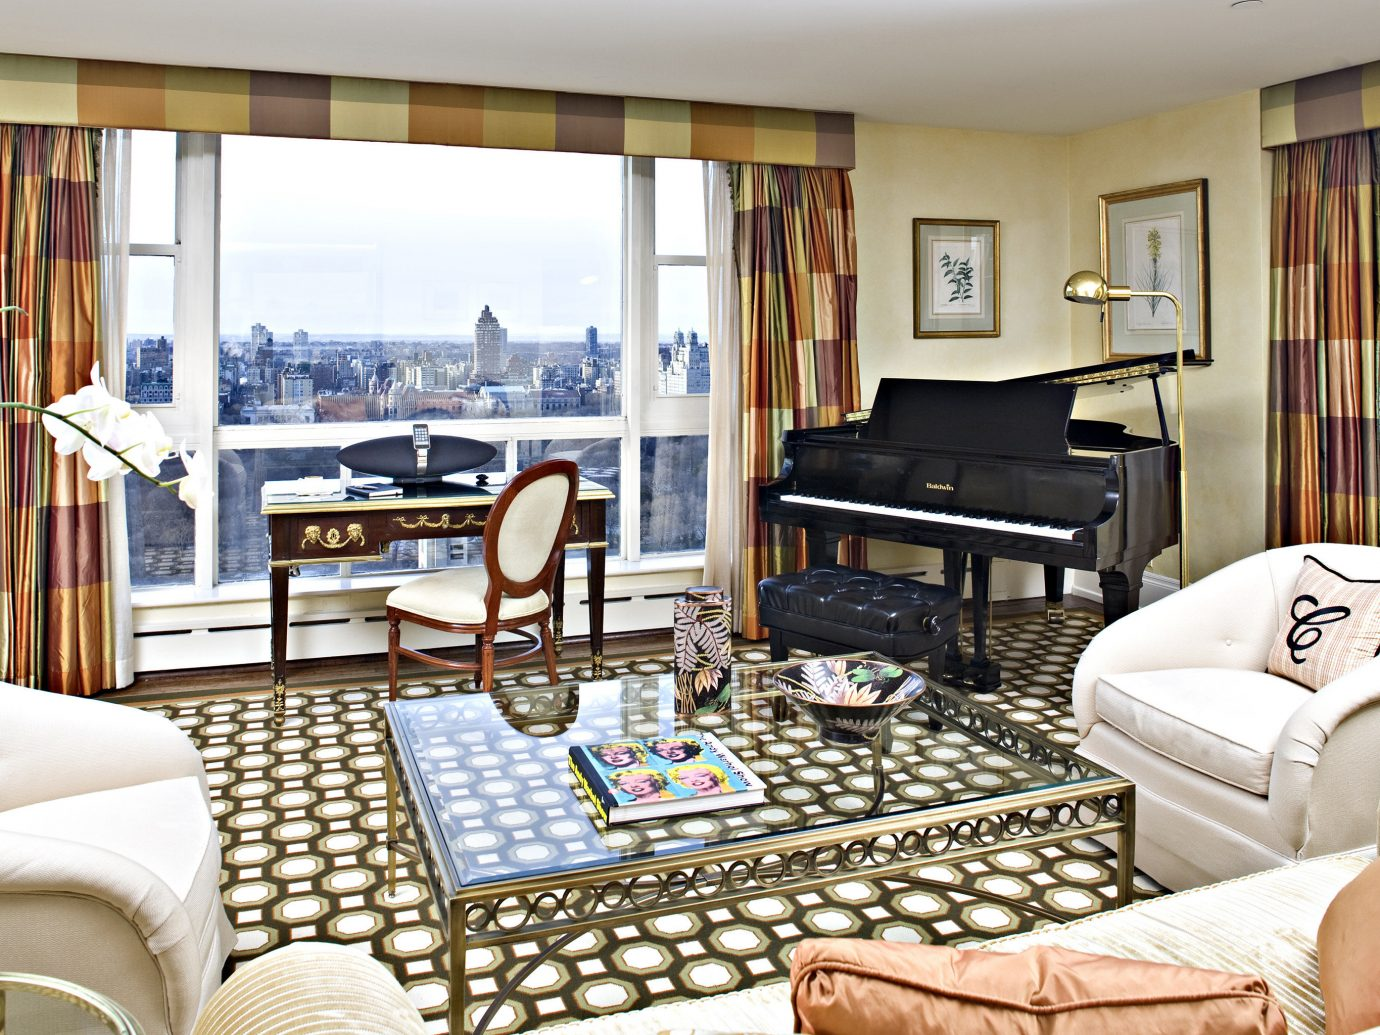 Elegant Hotels Living Lounge Luxury Trip Ideas indoor room window floor living room property ceiling condominium estate home furniture interior design real estate Suite cottage Bedroom apartment decorated